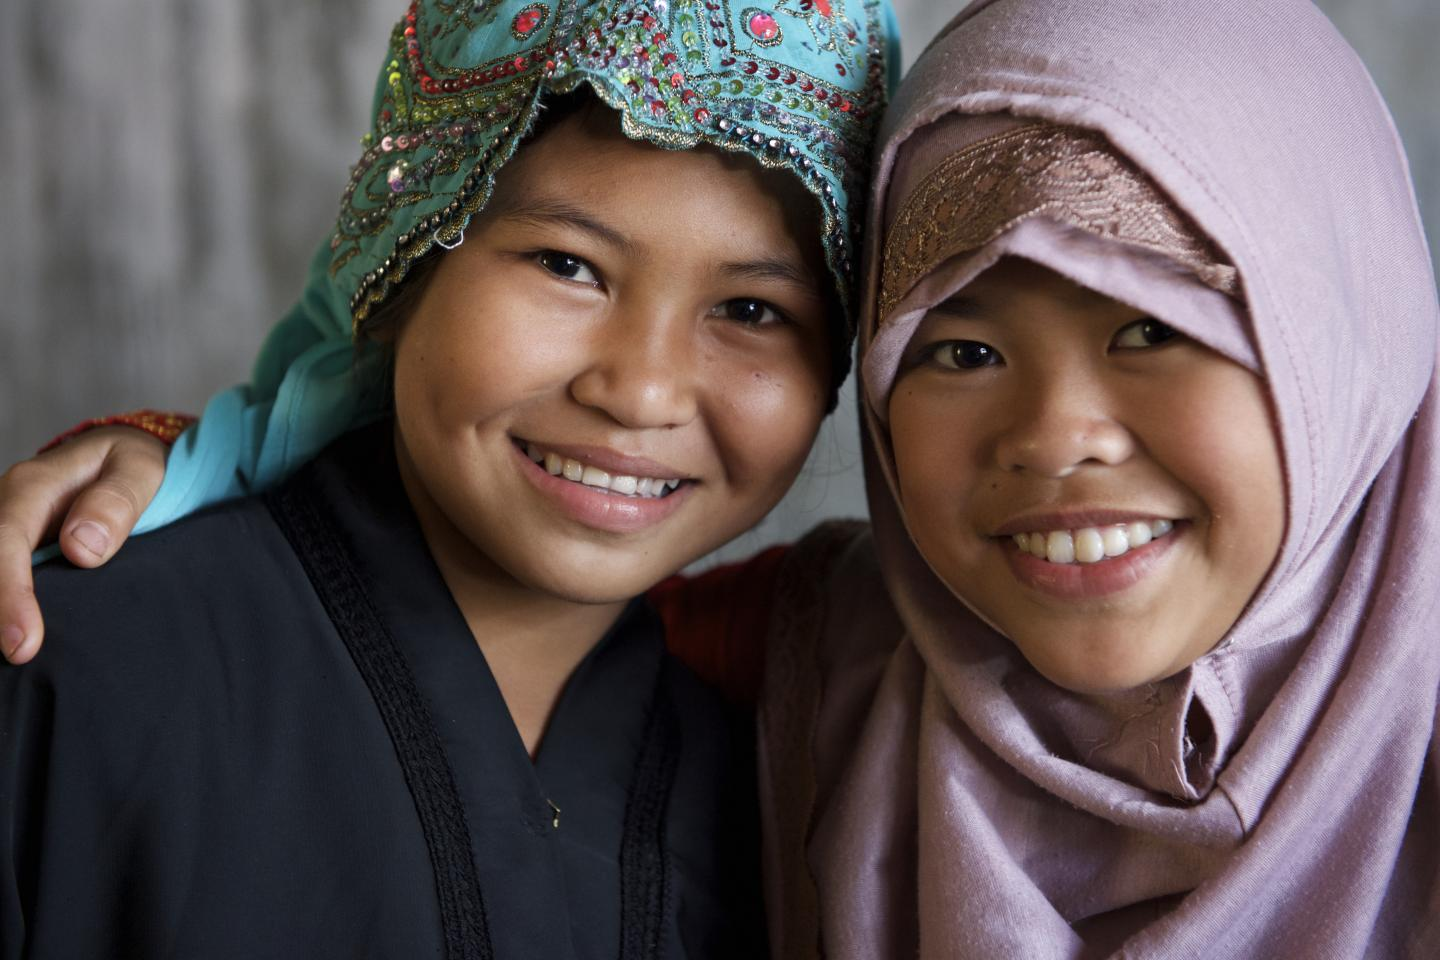 Two girls wearing hijabs smile in front of the camera